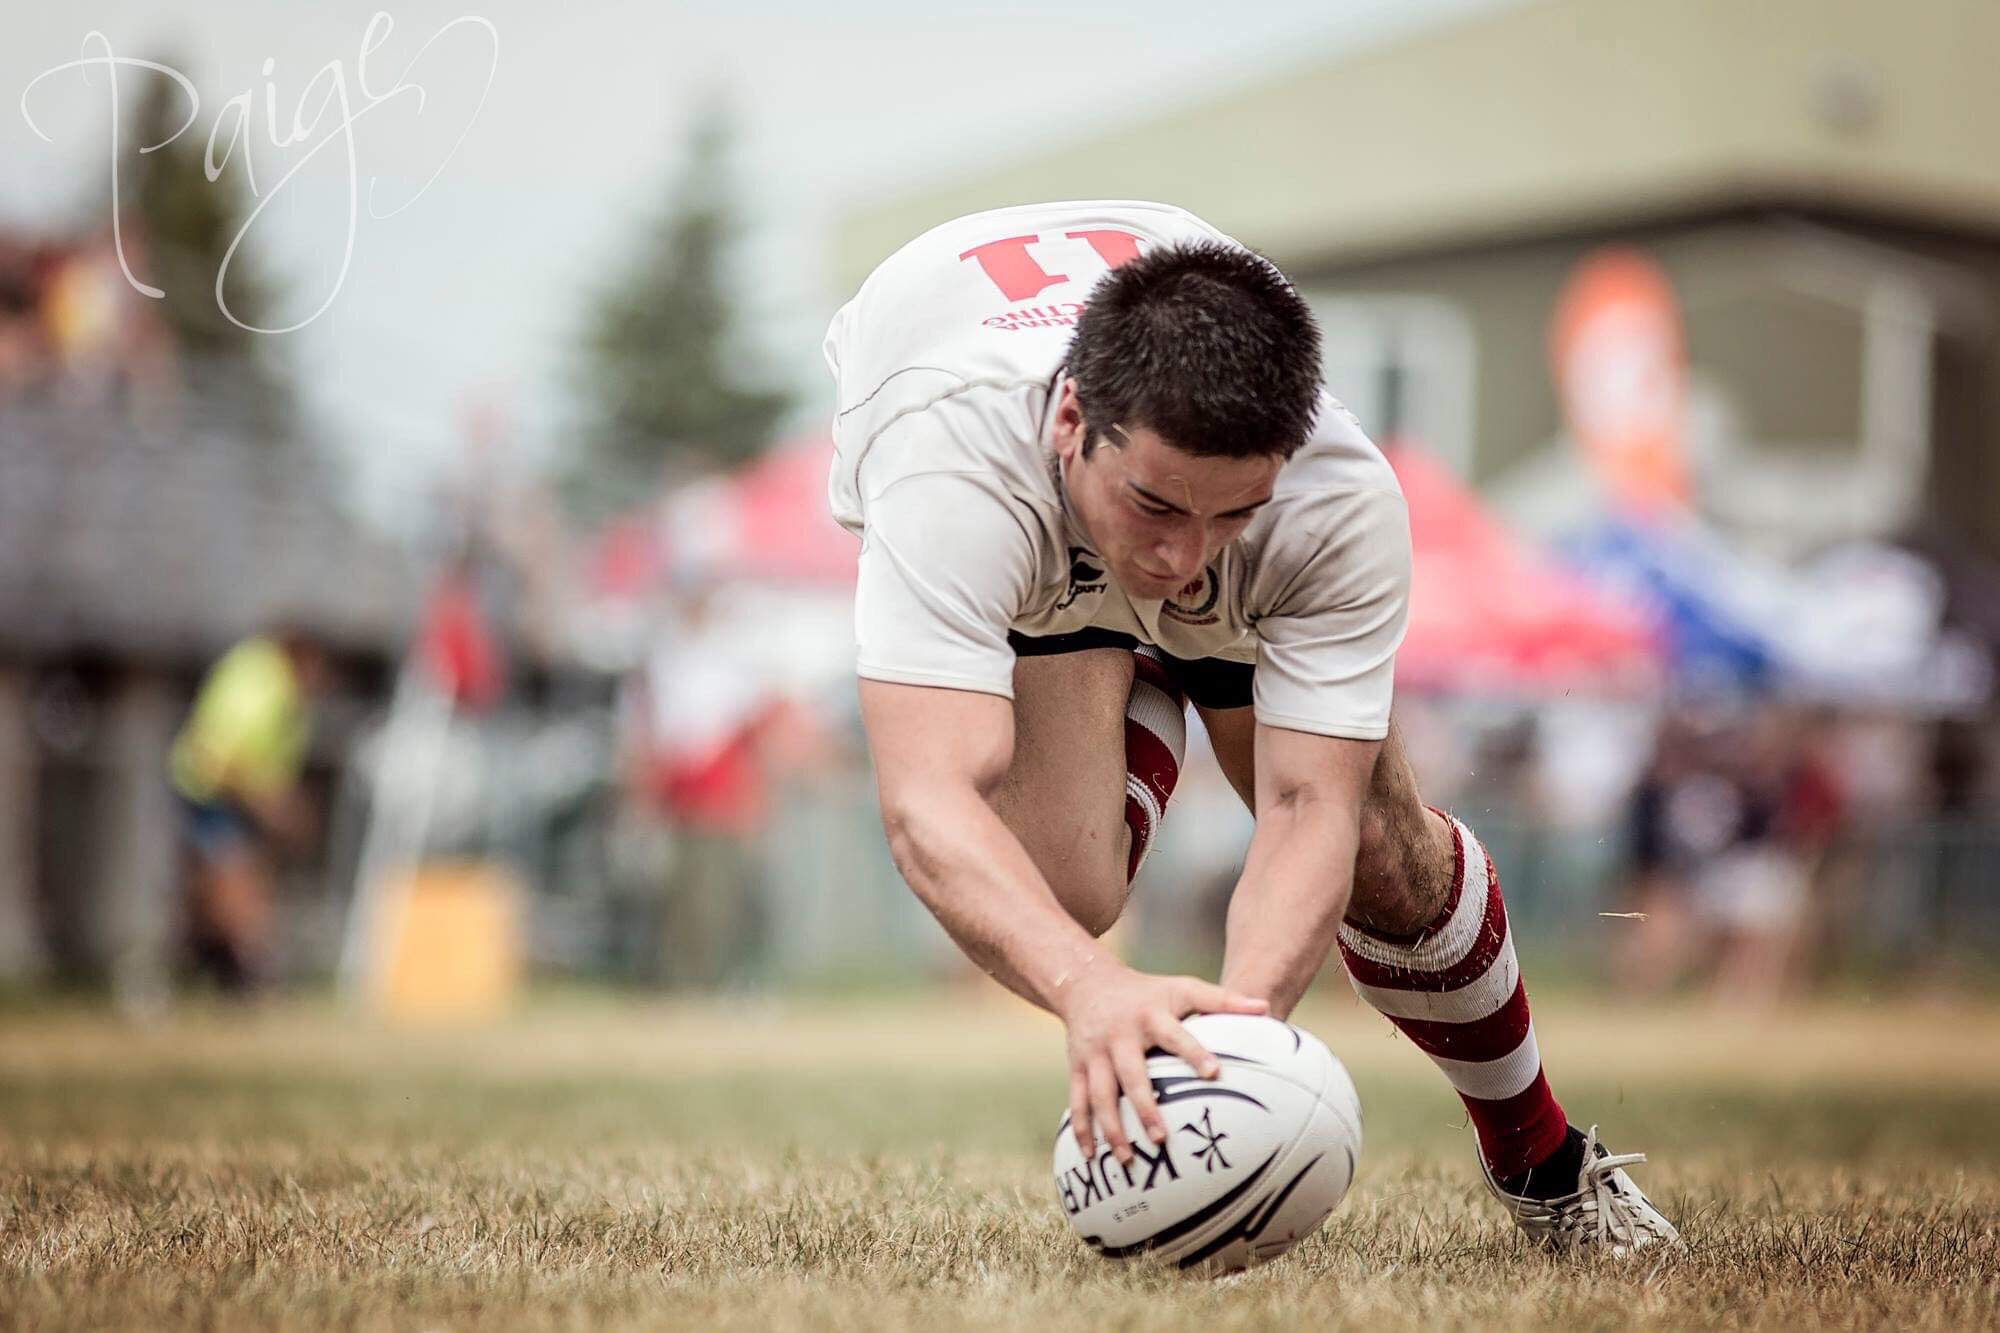 ROBBIE NEILLY - REGISTERED KINESIOLOGISTYOUTH MENTORRUGBY COACHIG: @THERUGBYKIN